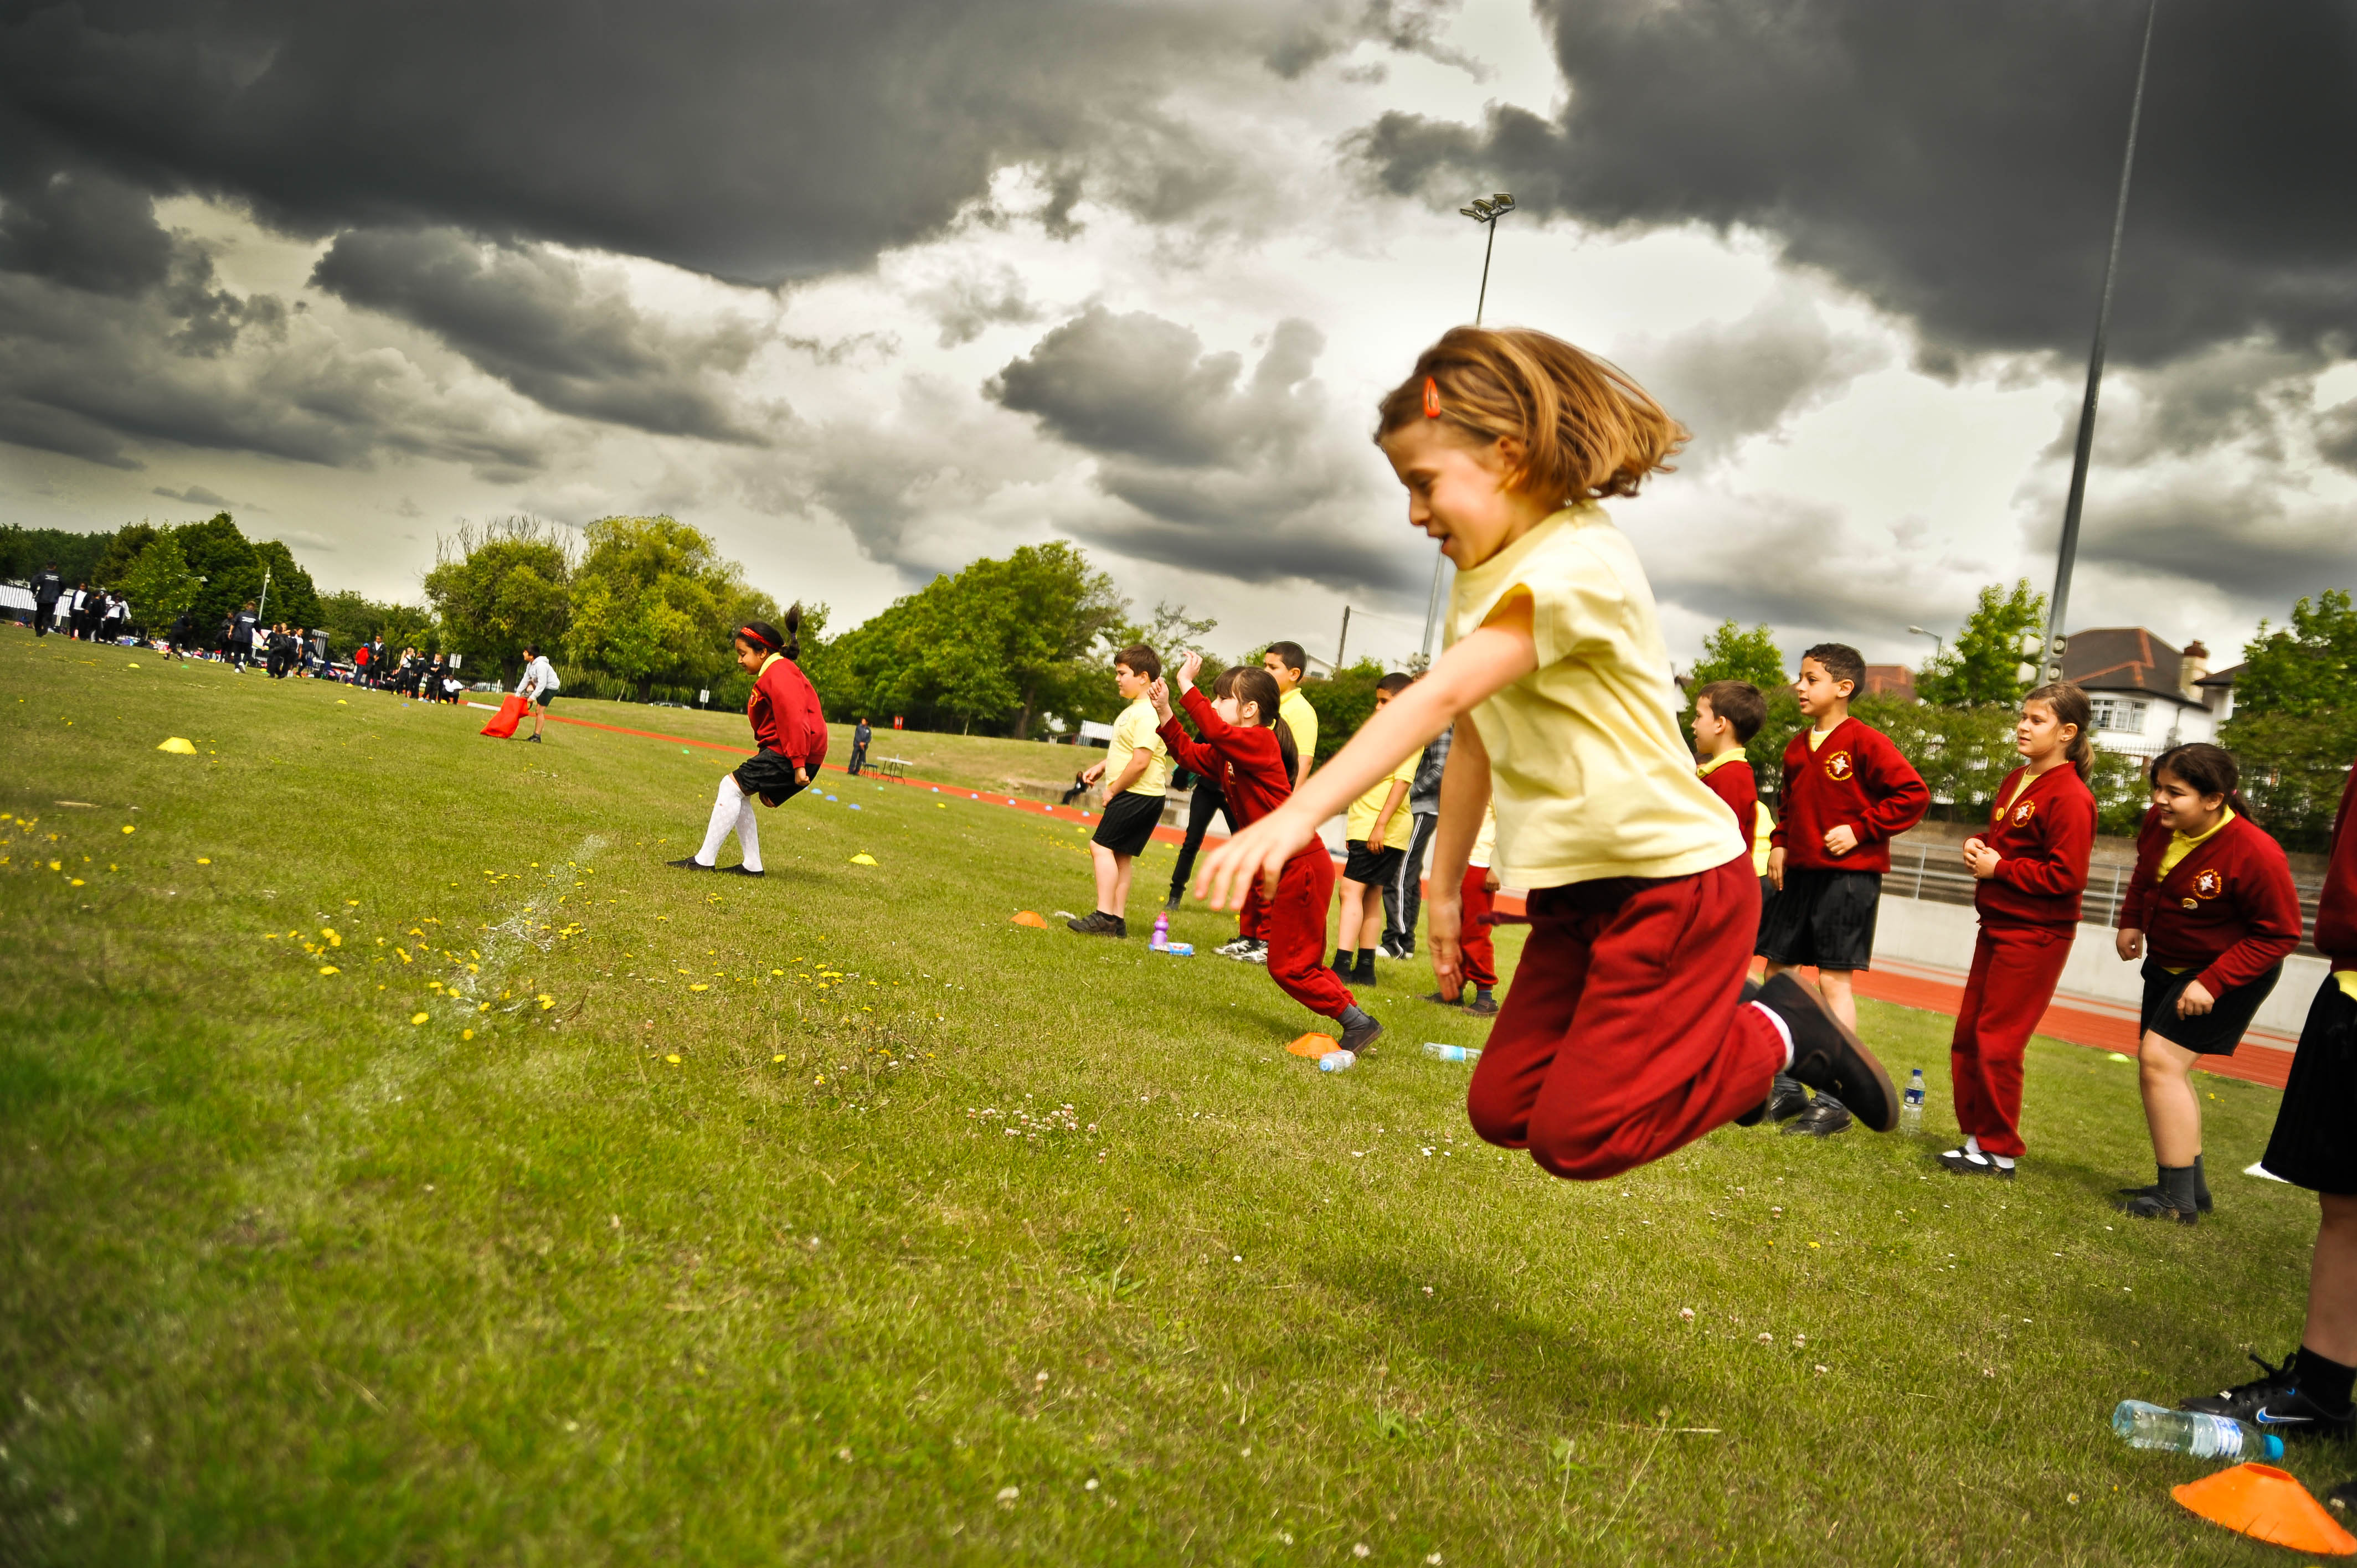 78% of UK children failing to meet recommended fitness levels